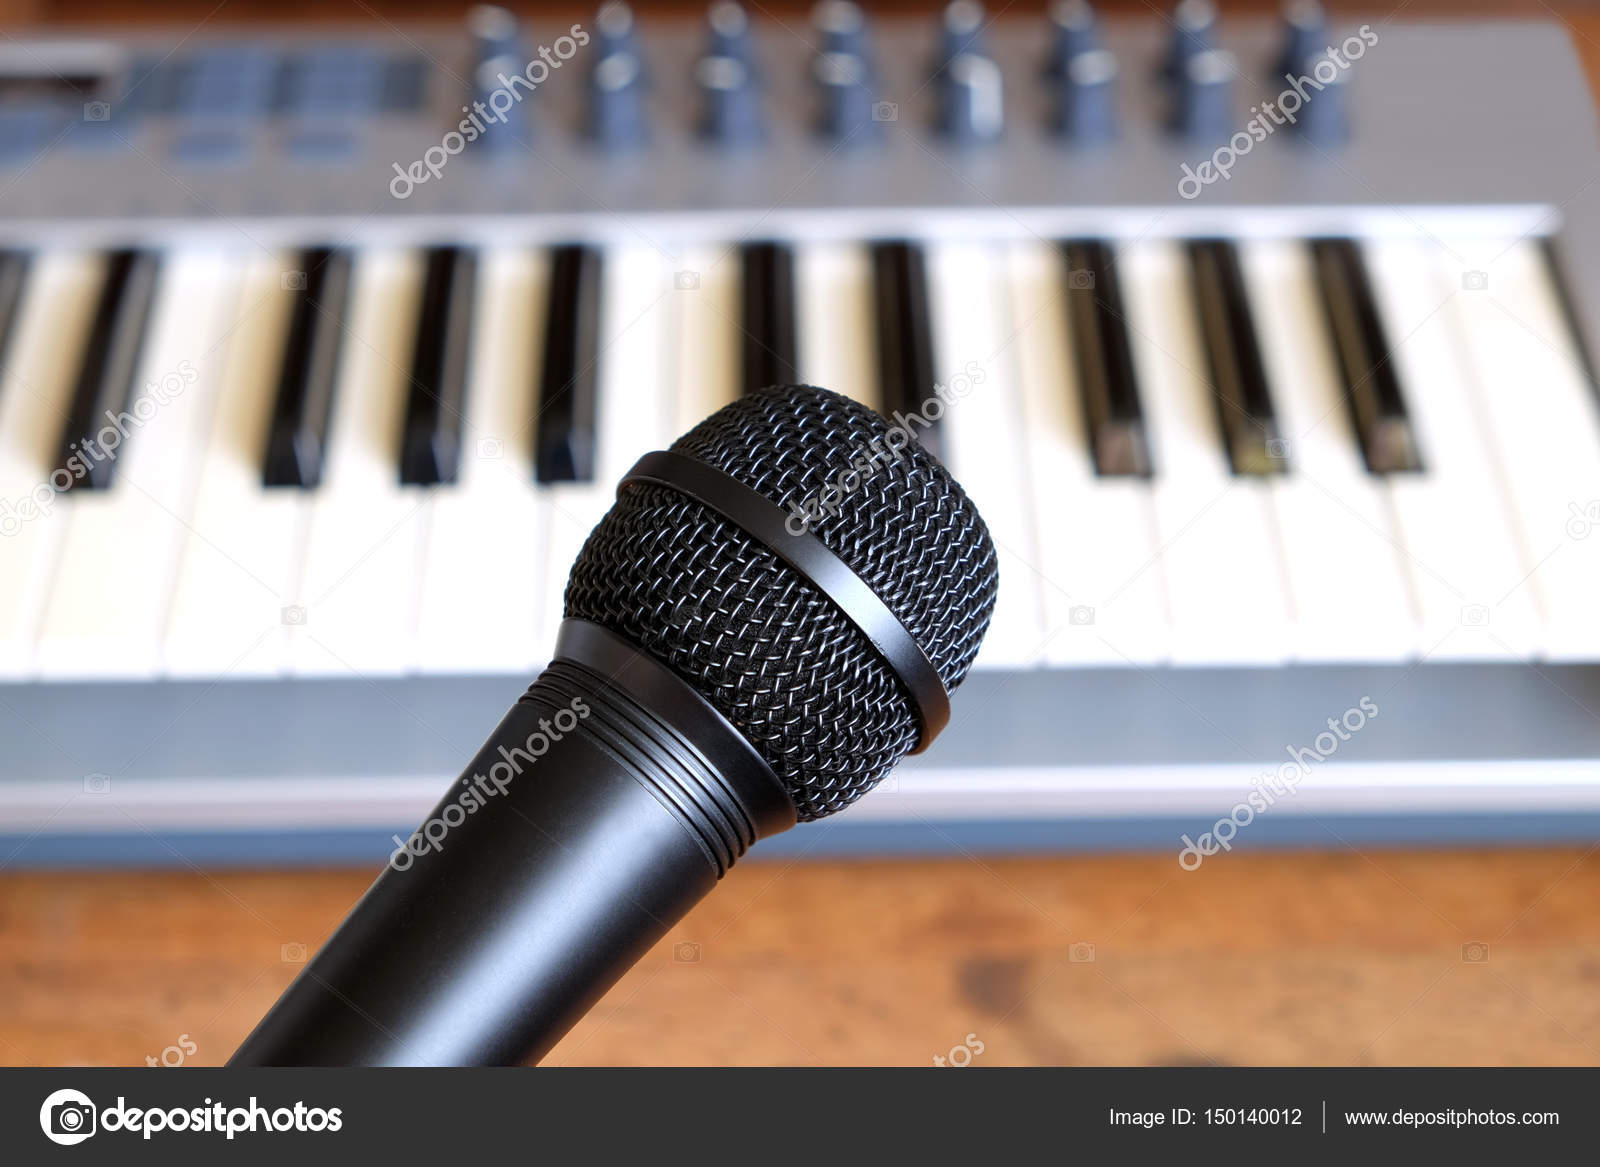 Black vocal microphone closeup against electronic synthesizer